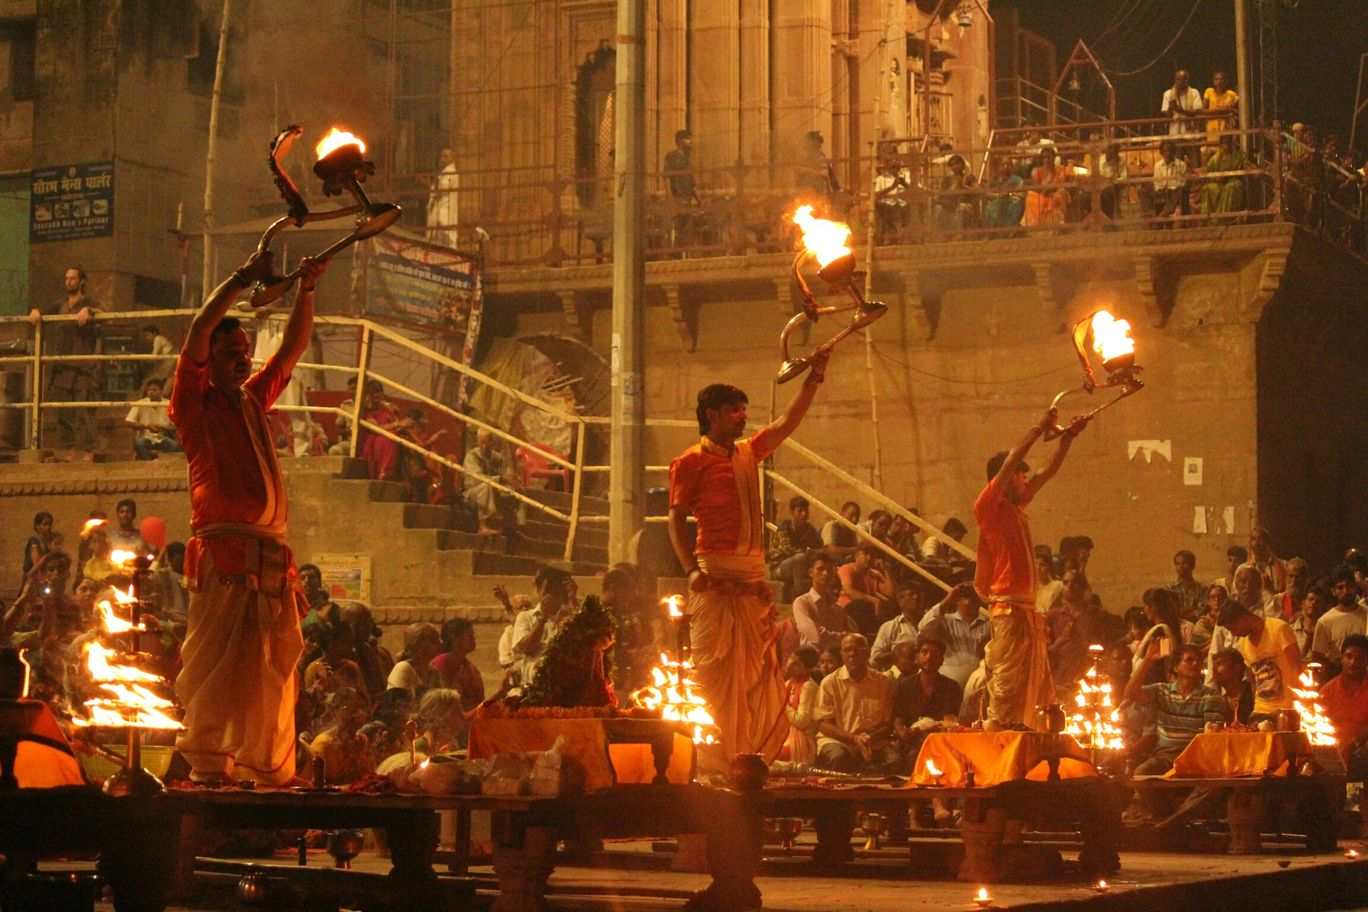 Photo of Varanasi By Akhil krishna